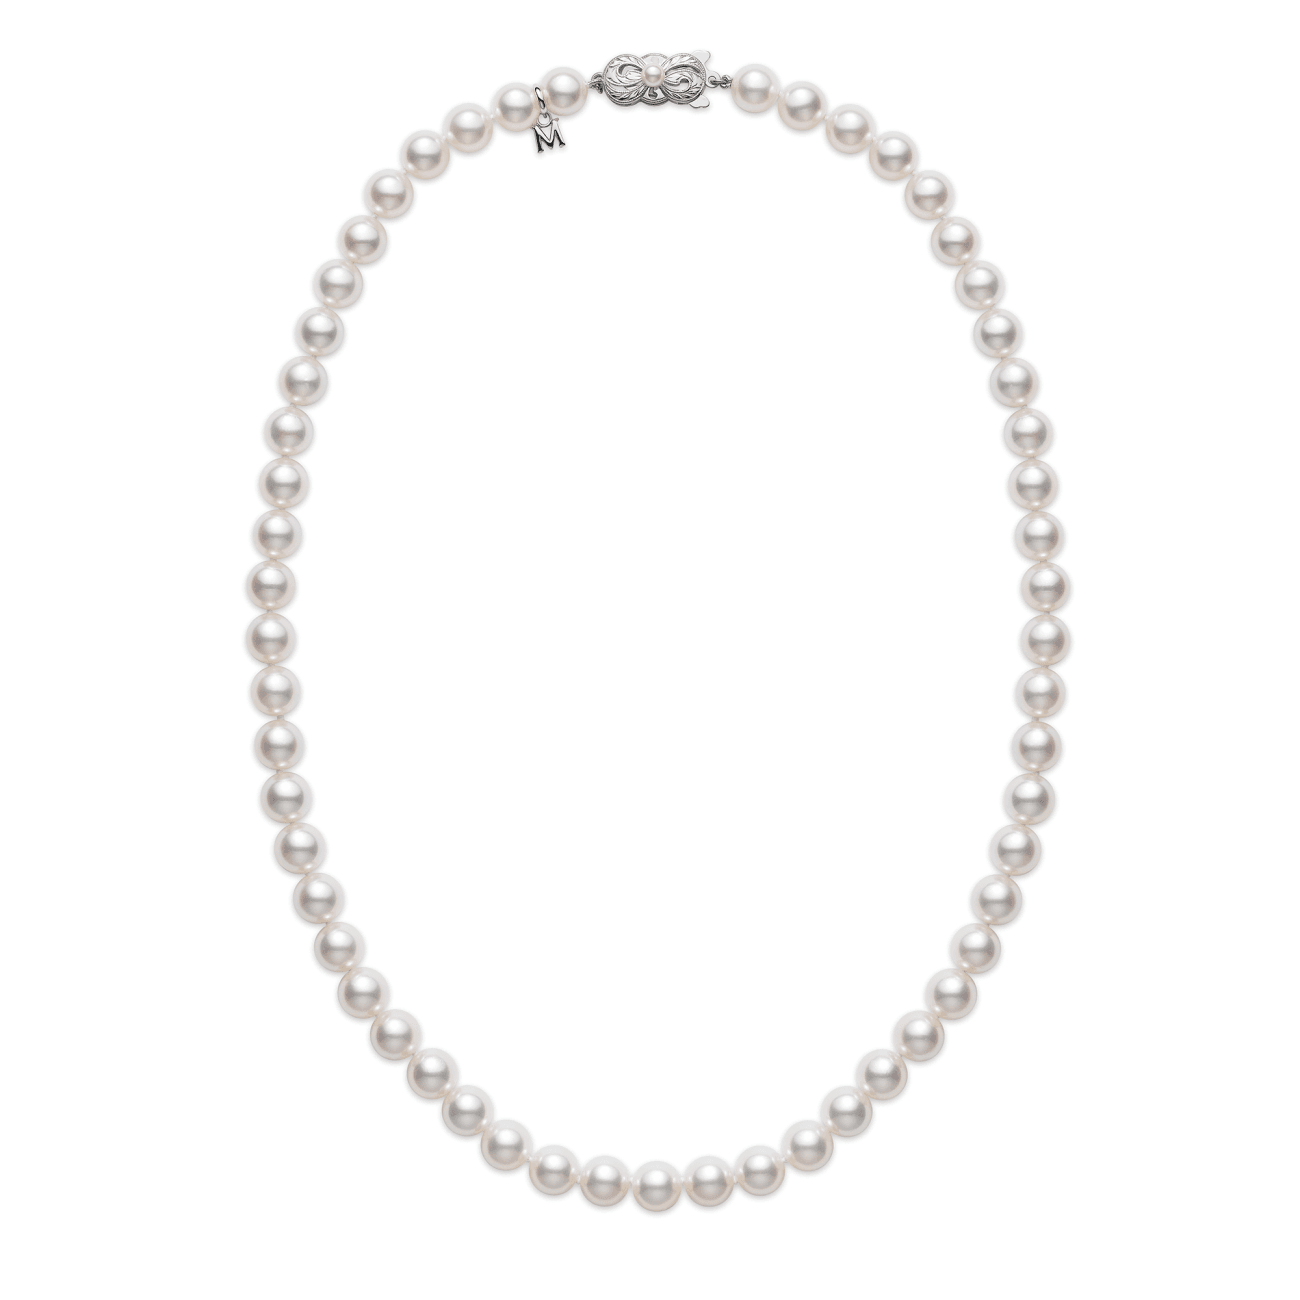 Mikimoto Jewelry - 18k White Gold 7.5mm Cultured Pearl Necklace 18inch | Manfredi Jewels